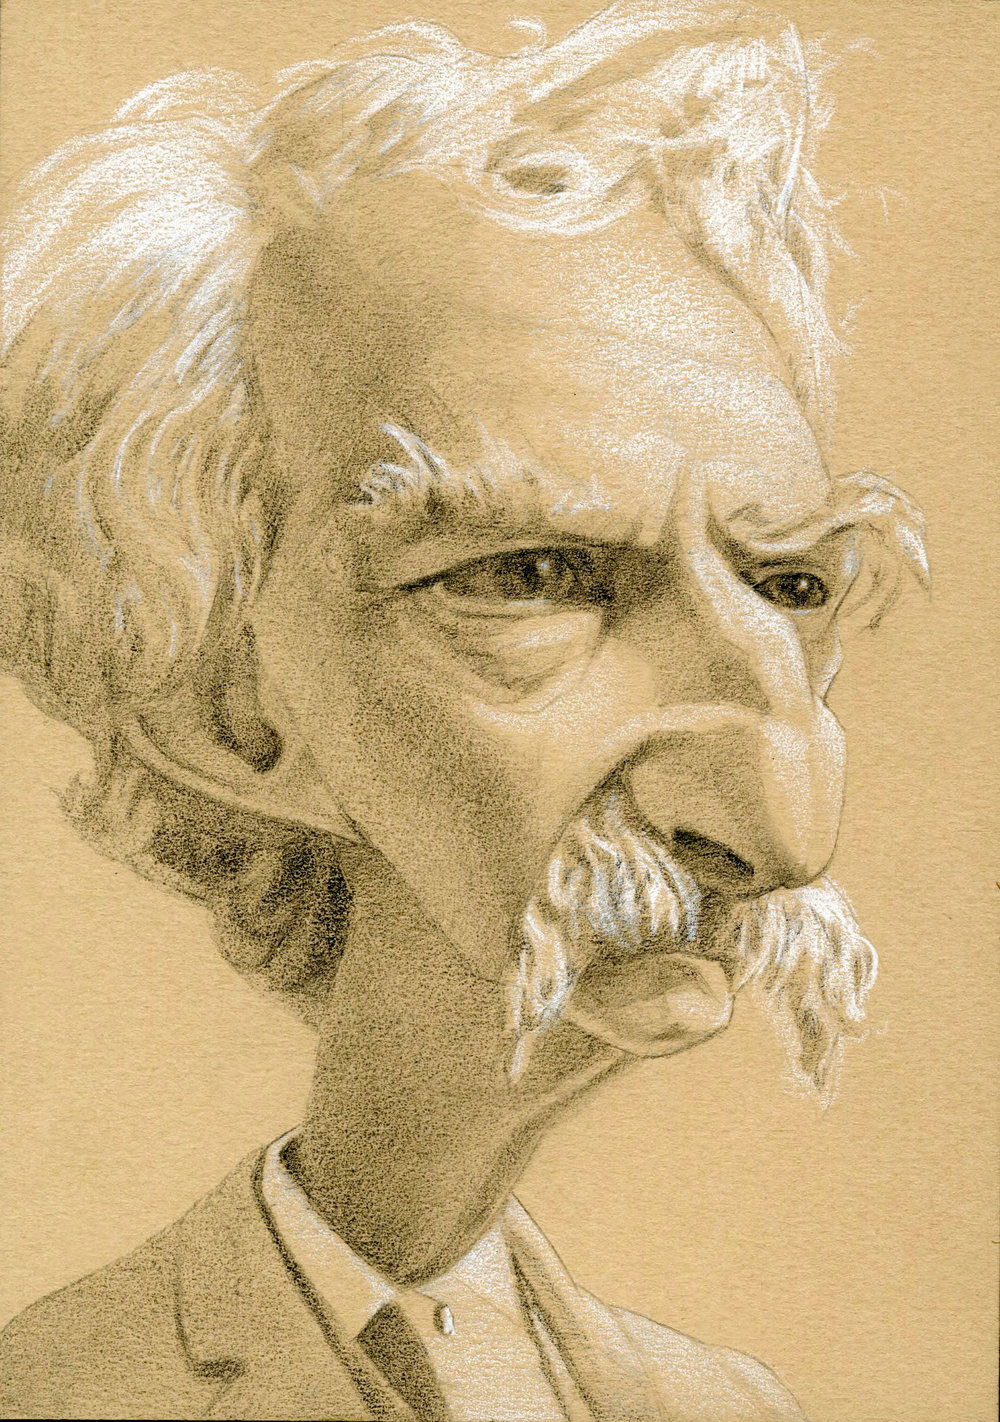 Mark Twain,  2017  Pencil on paper  5 x 7 inches